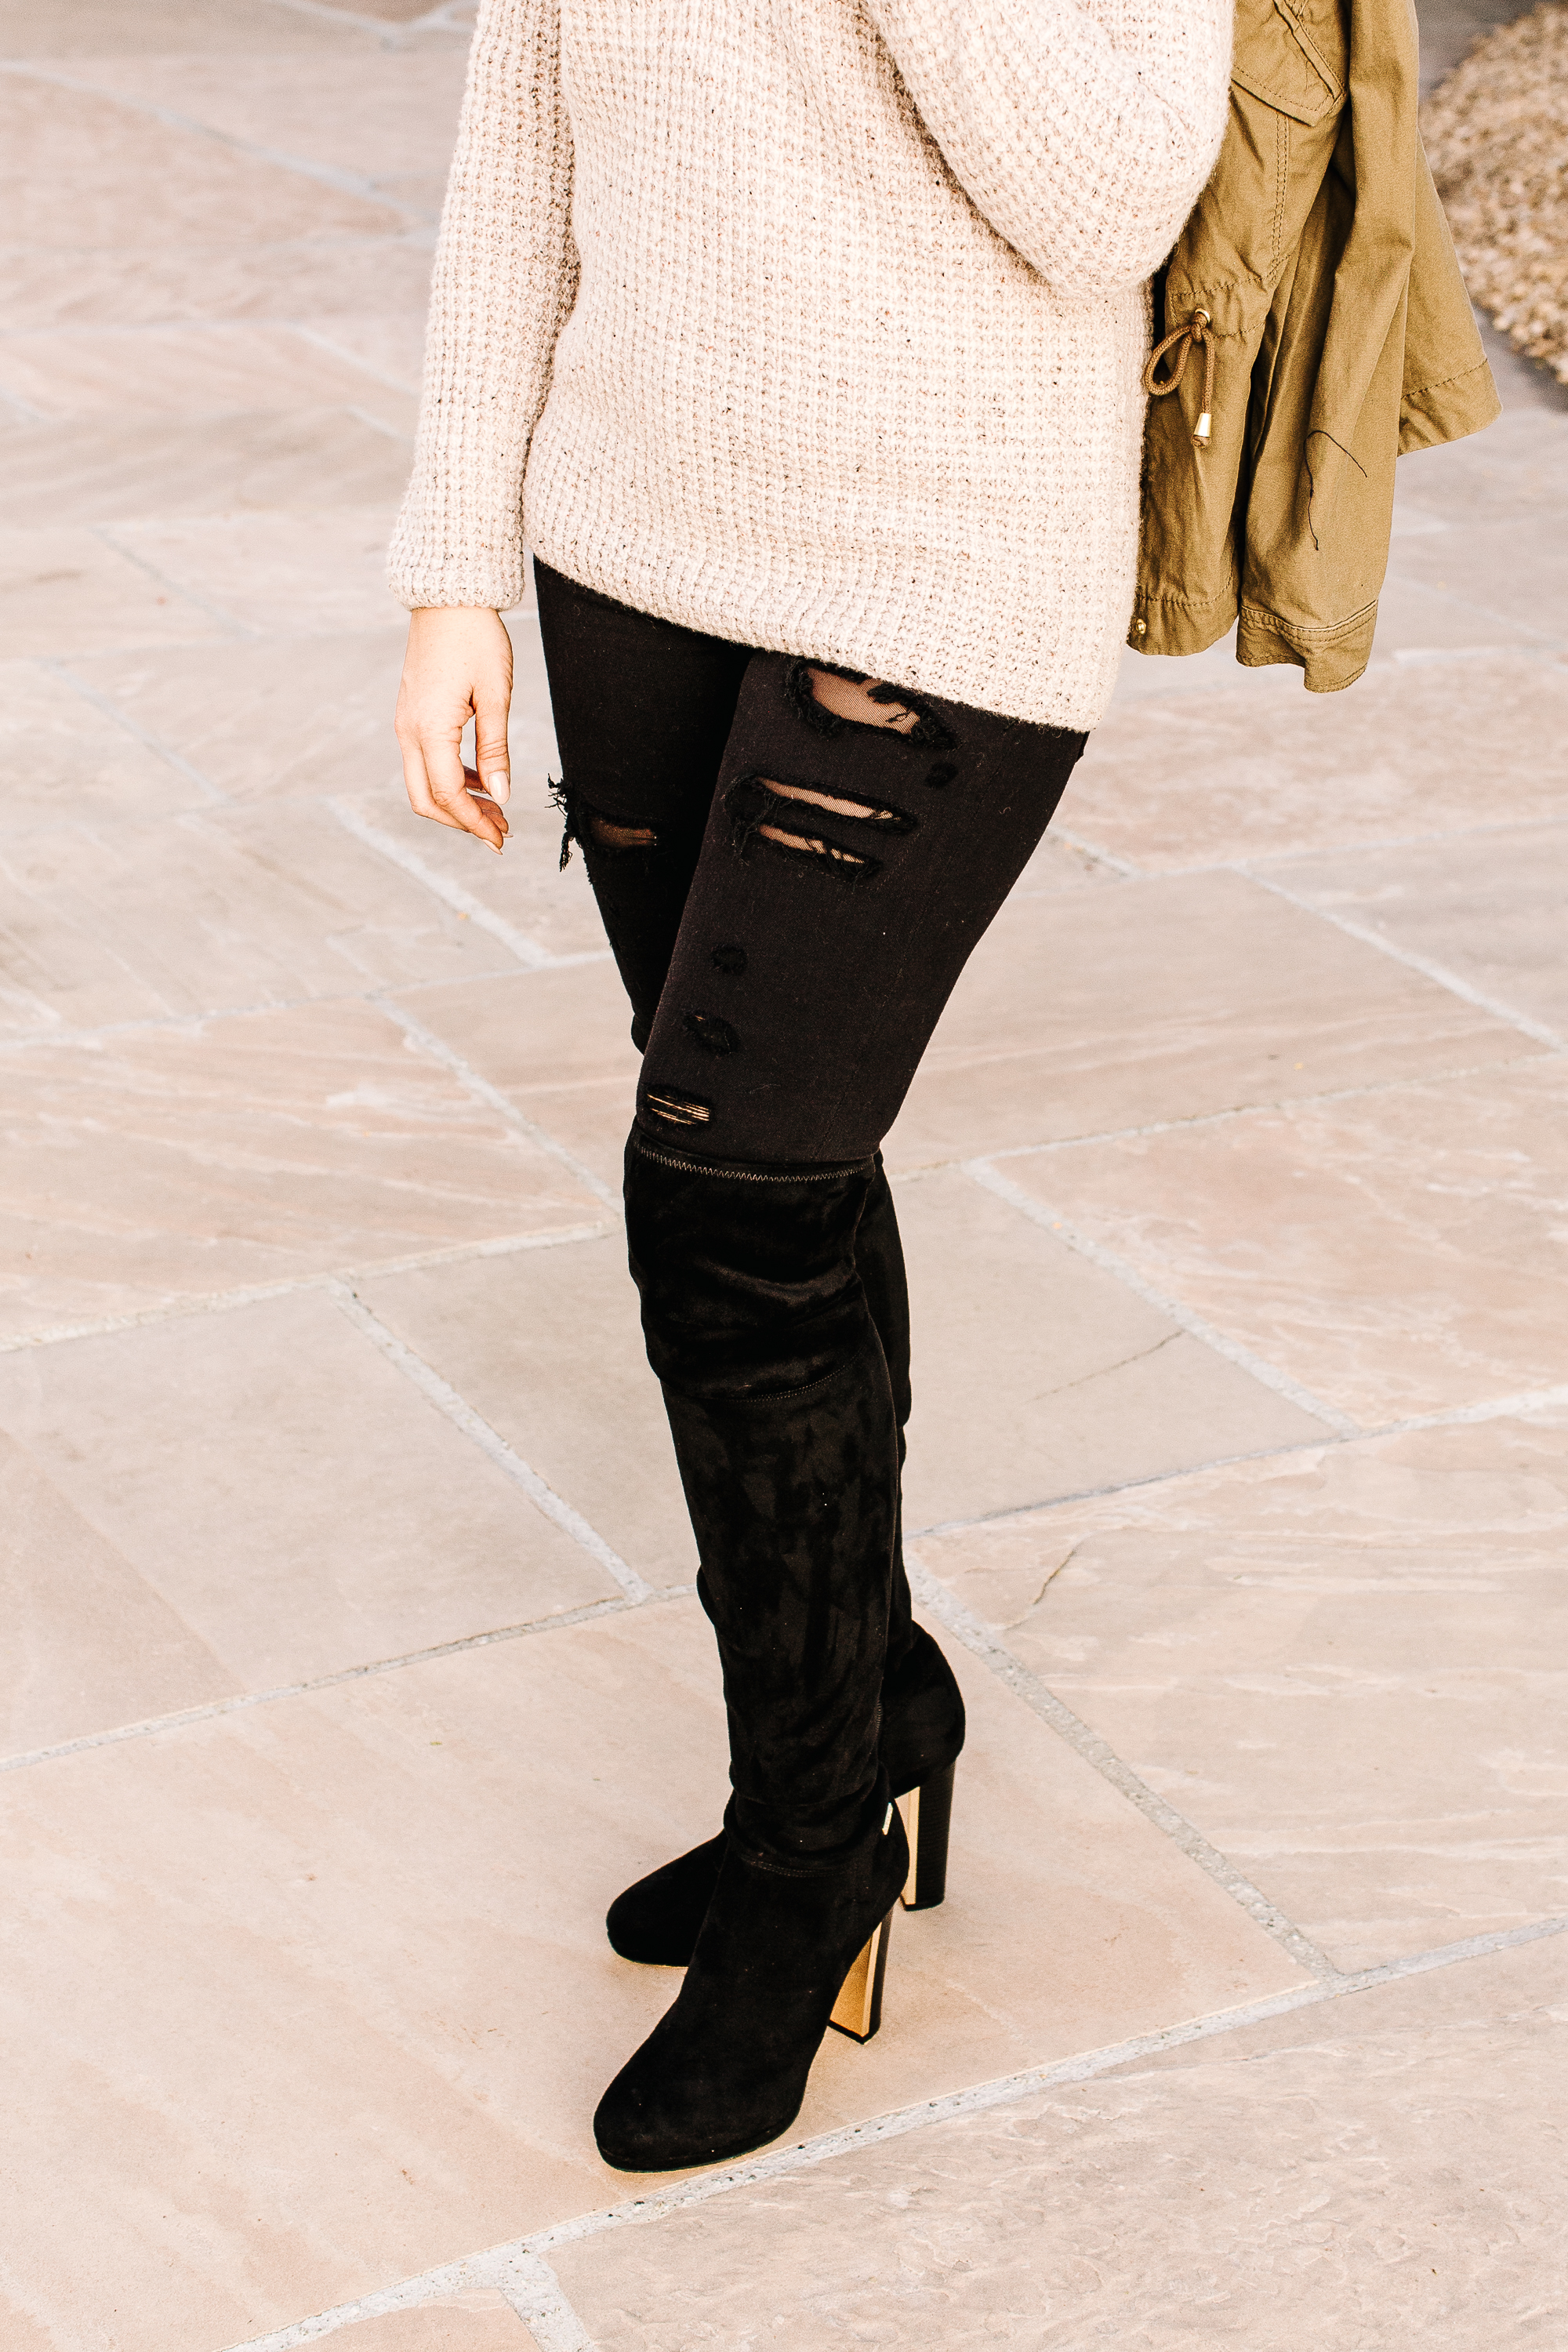 trish-taylor-cozt-sweater-and-thigh-high-boots-distressed-jeans